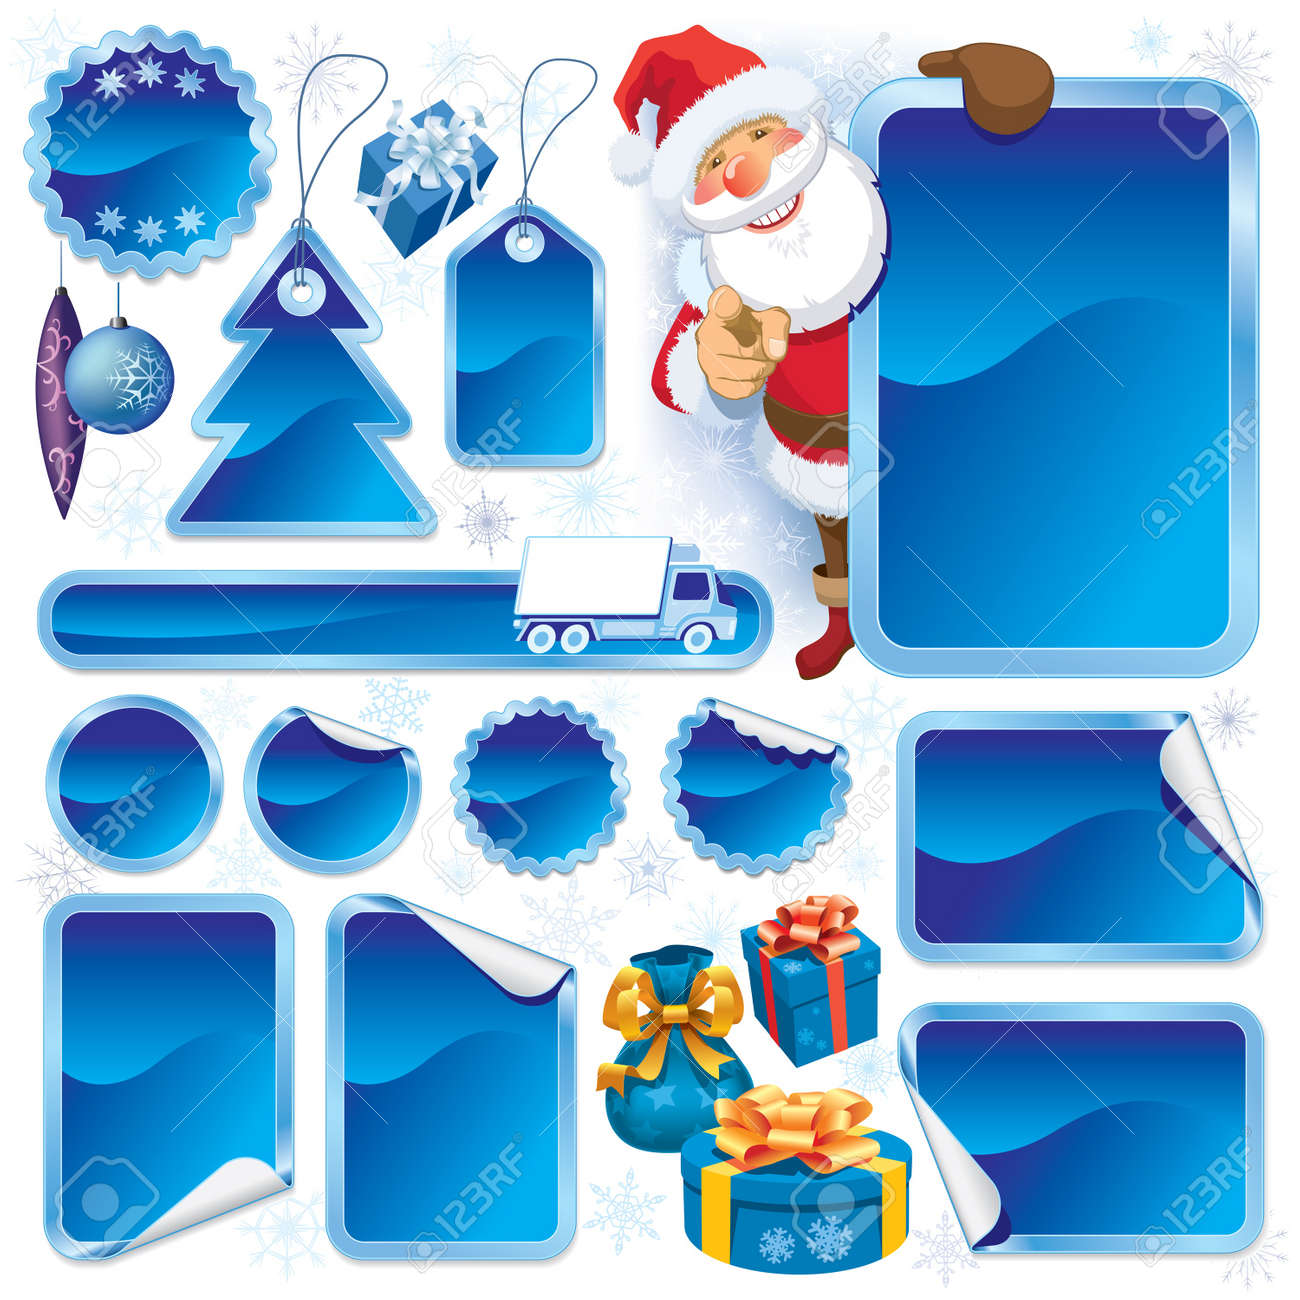 Collection of blue stickers and Christmas design elements Stock Vector - 15843324